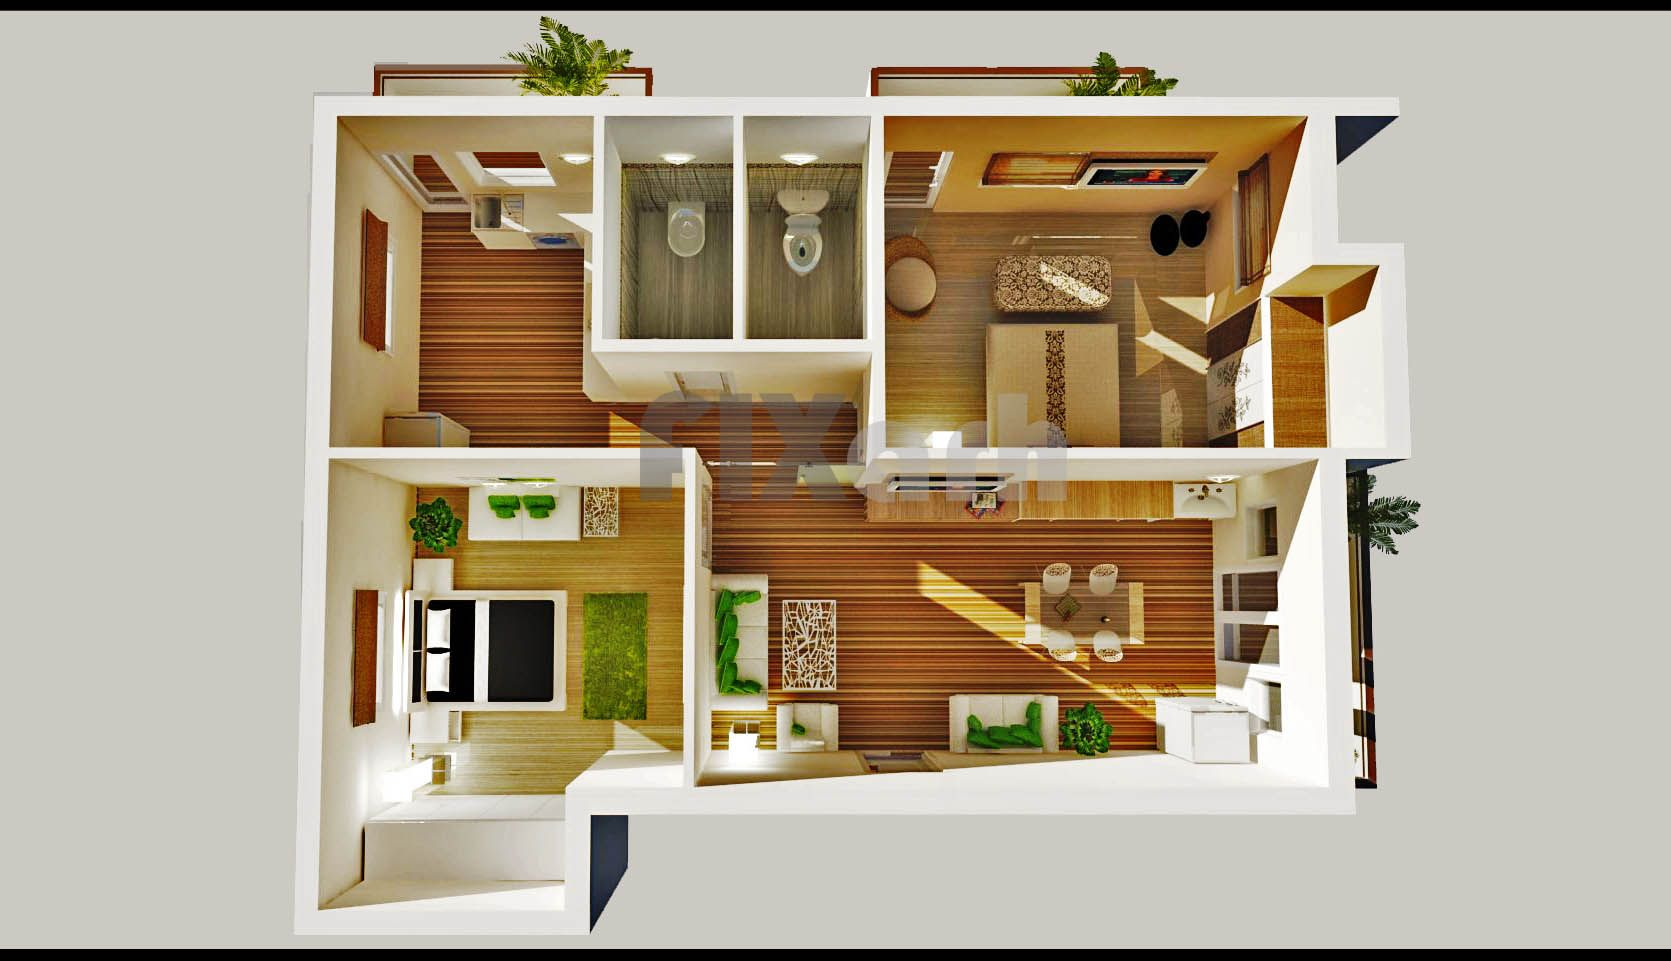 house floor plans 3 bedroom 2 bath 3d. 2 bedroom floor plans 3d house 3 bath m